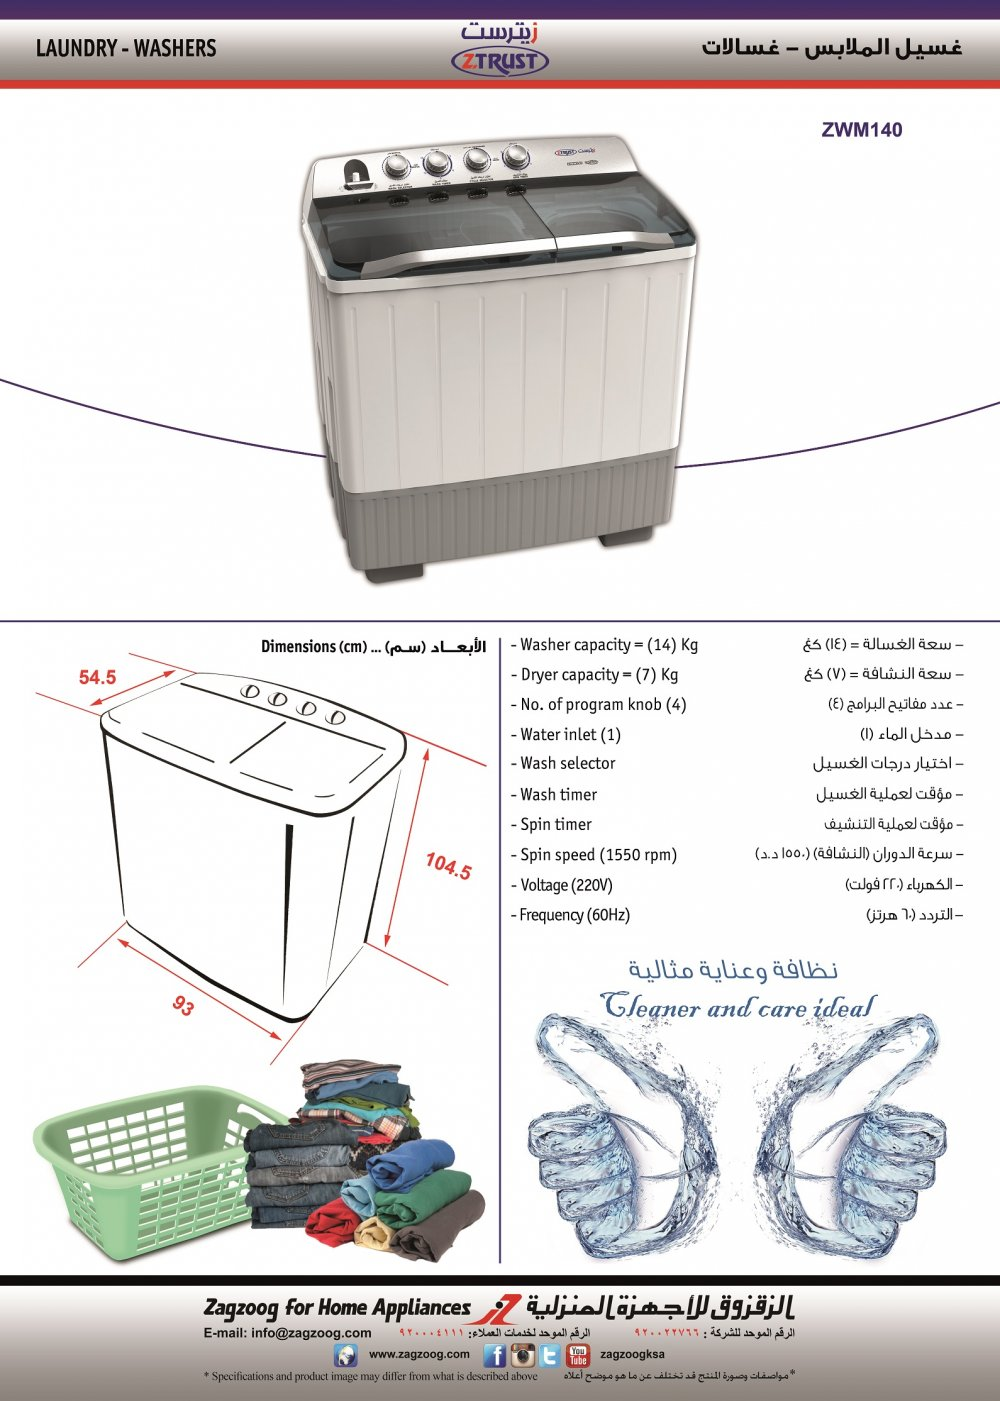 Z.TRUST W.M , Twin/Top Washer , (14)Kg